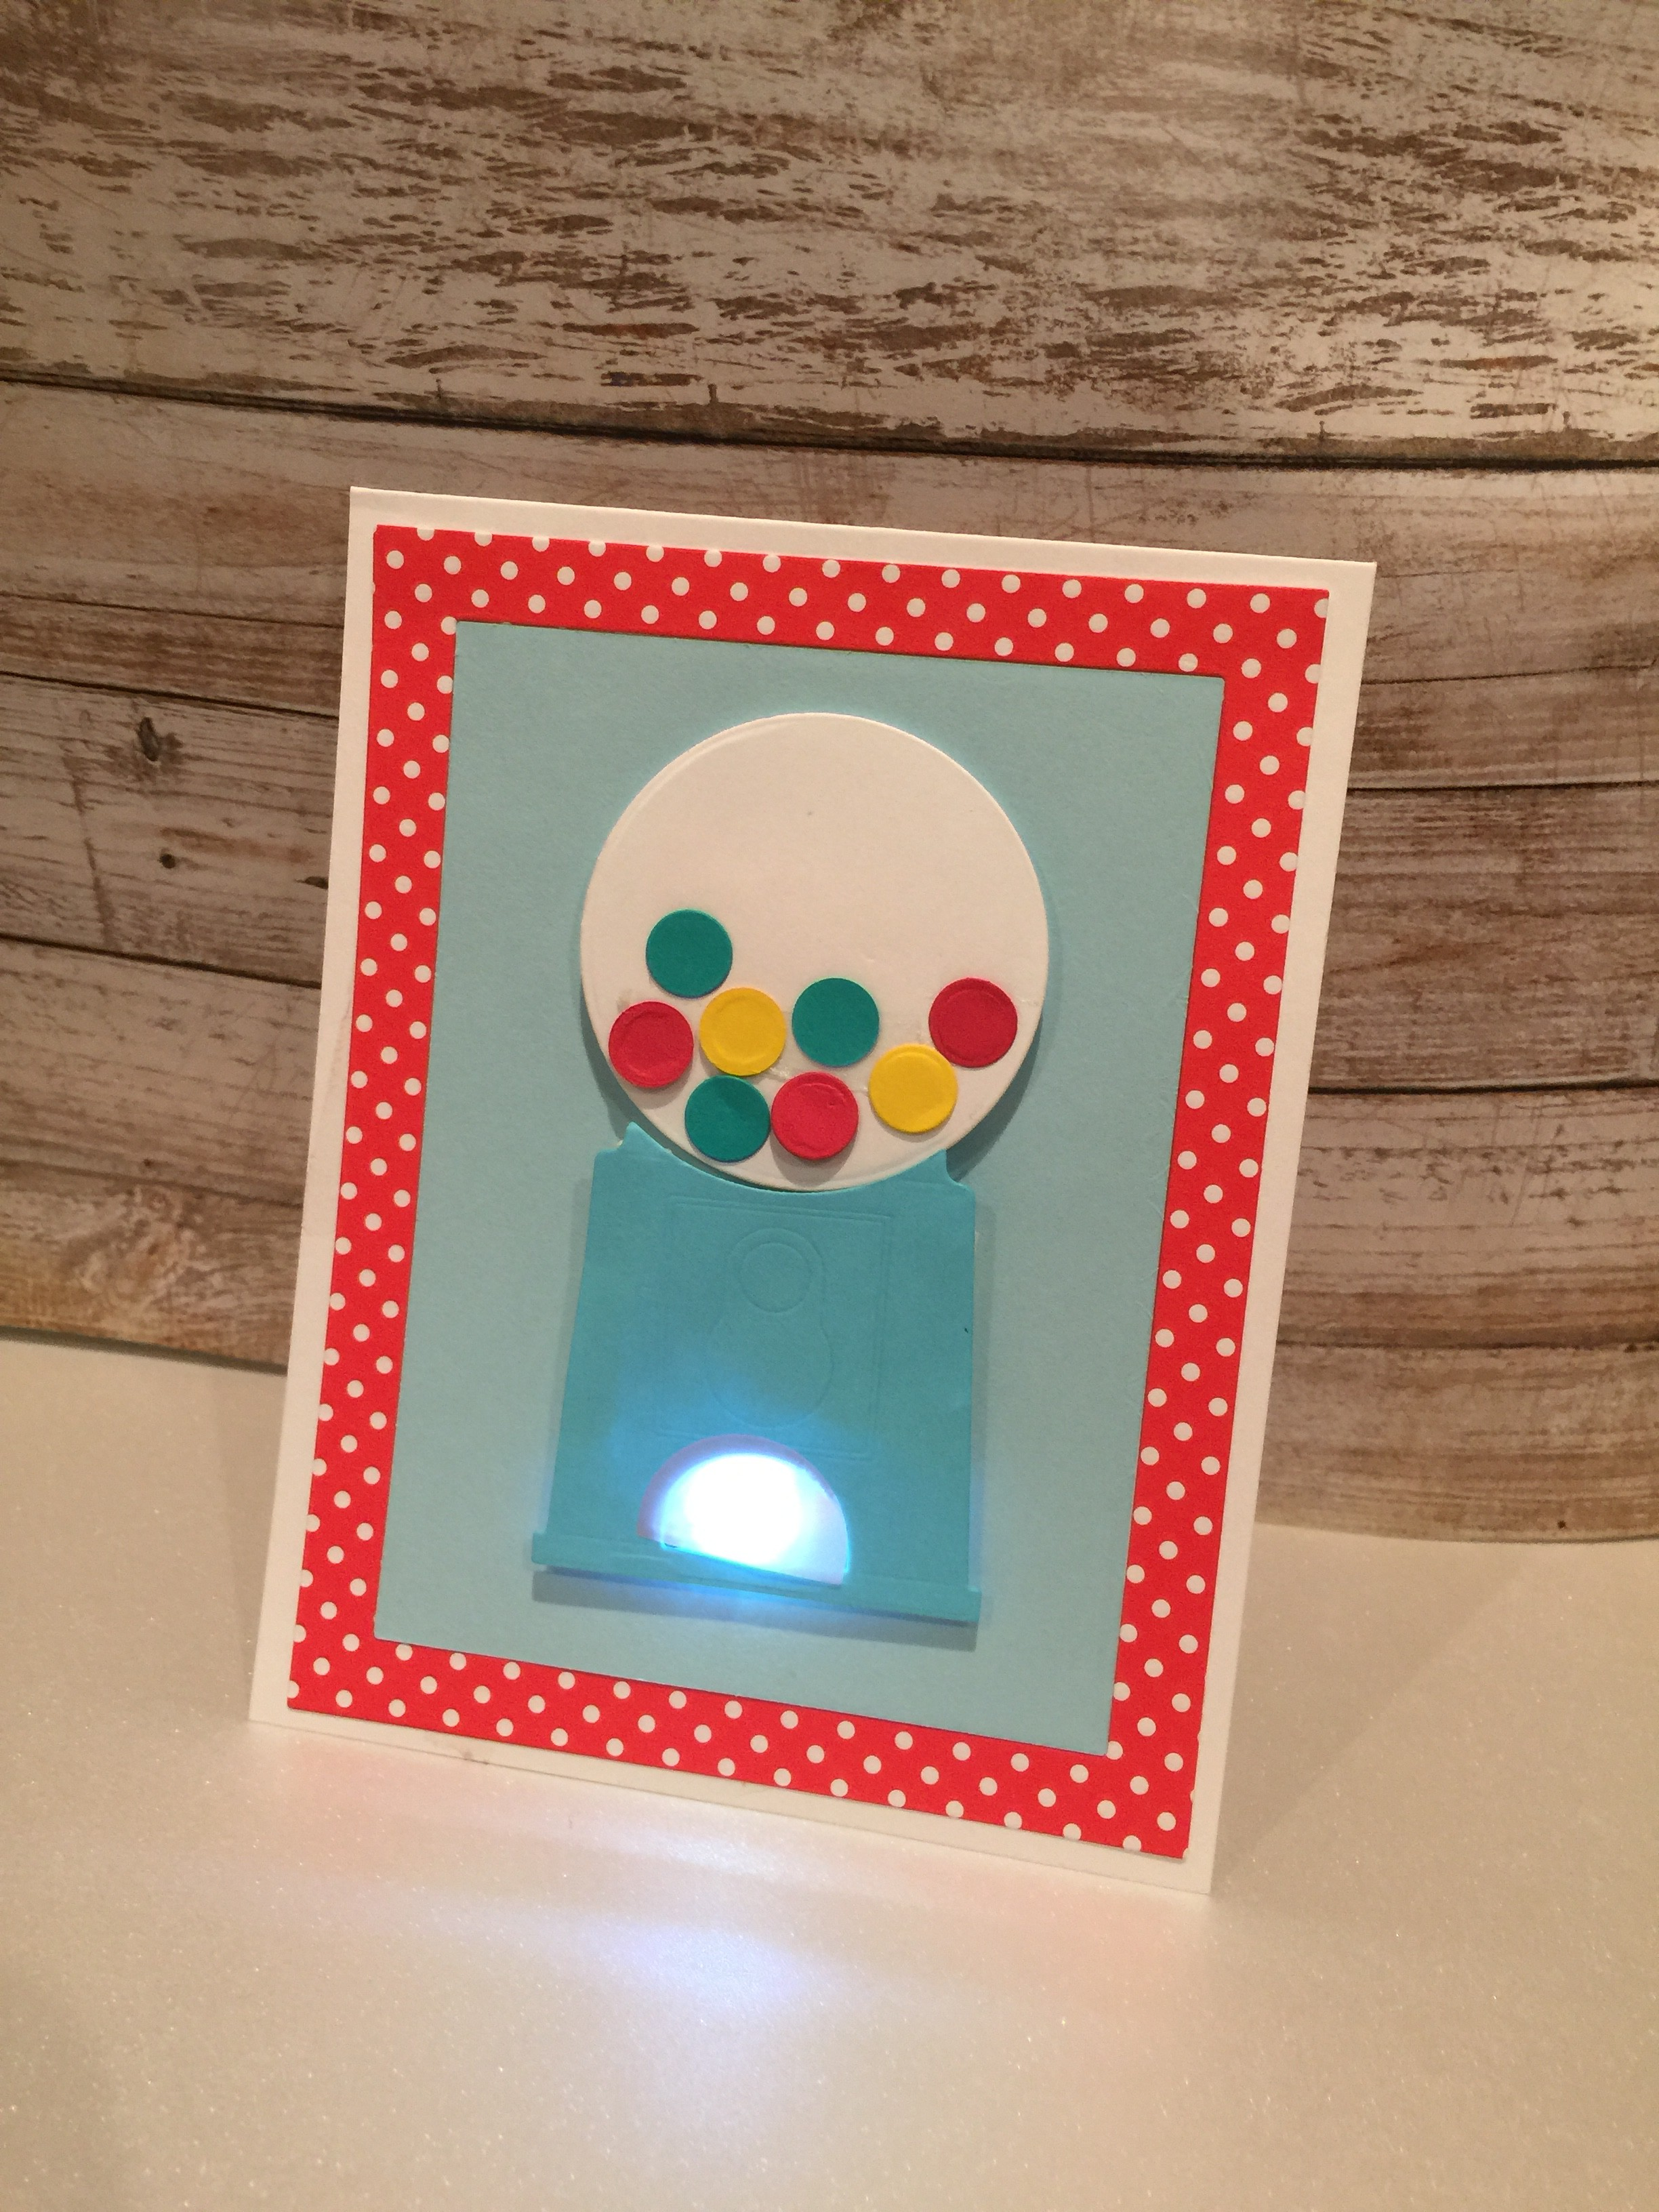 Light Up Bubble Gum Card With My Favorite Things Chibitronics